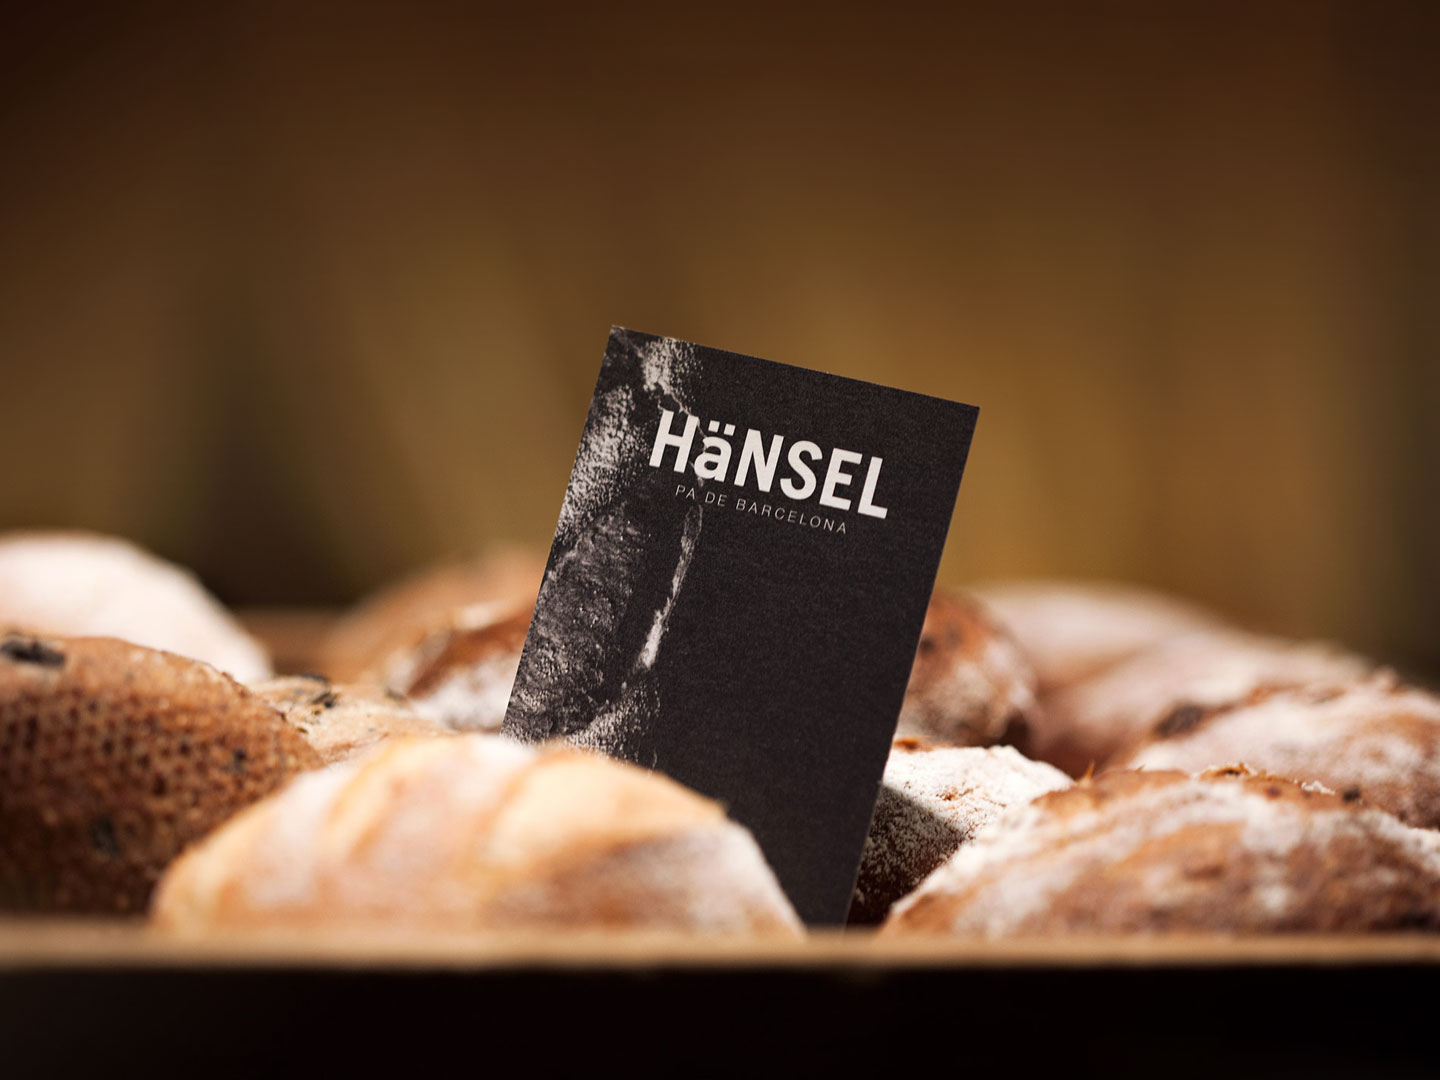 Hänsel business card